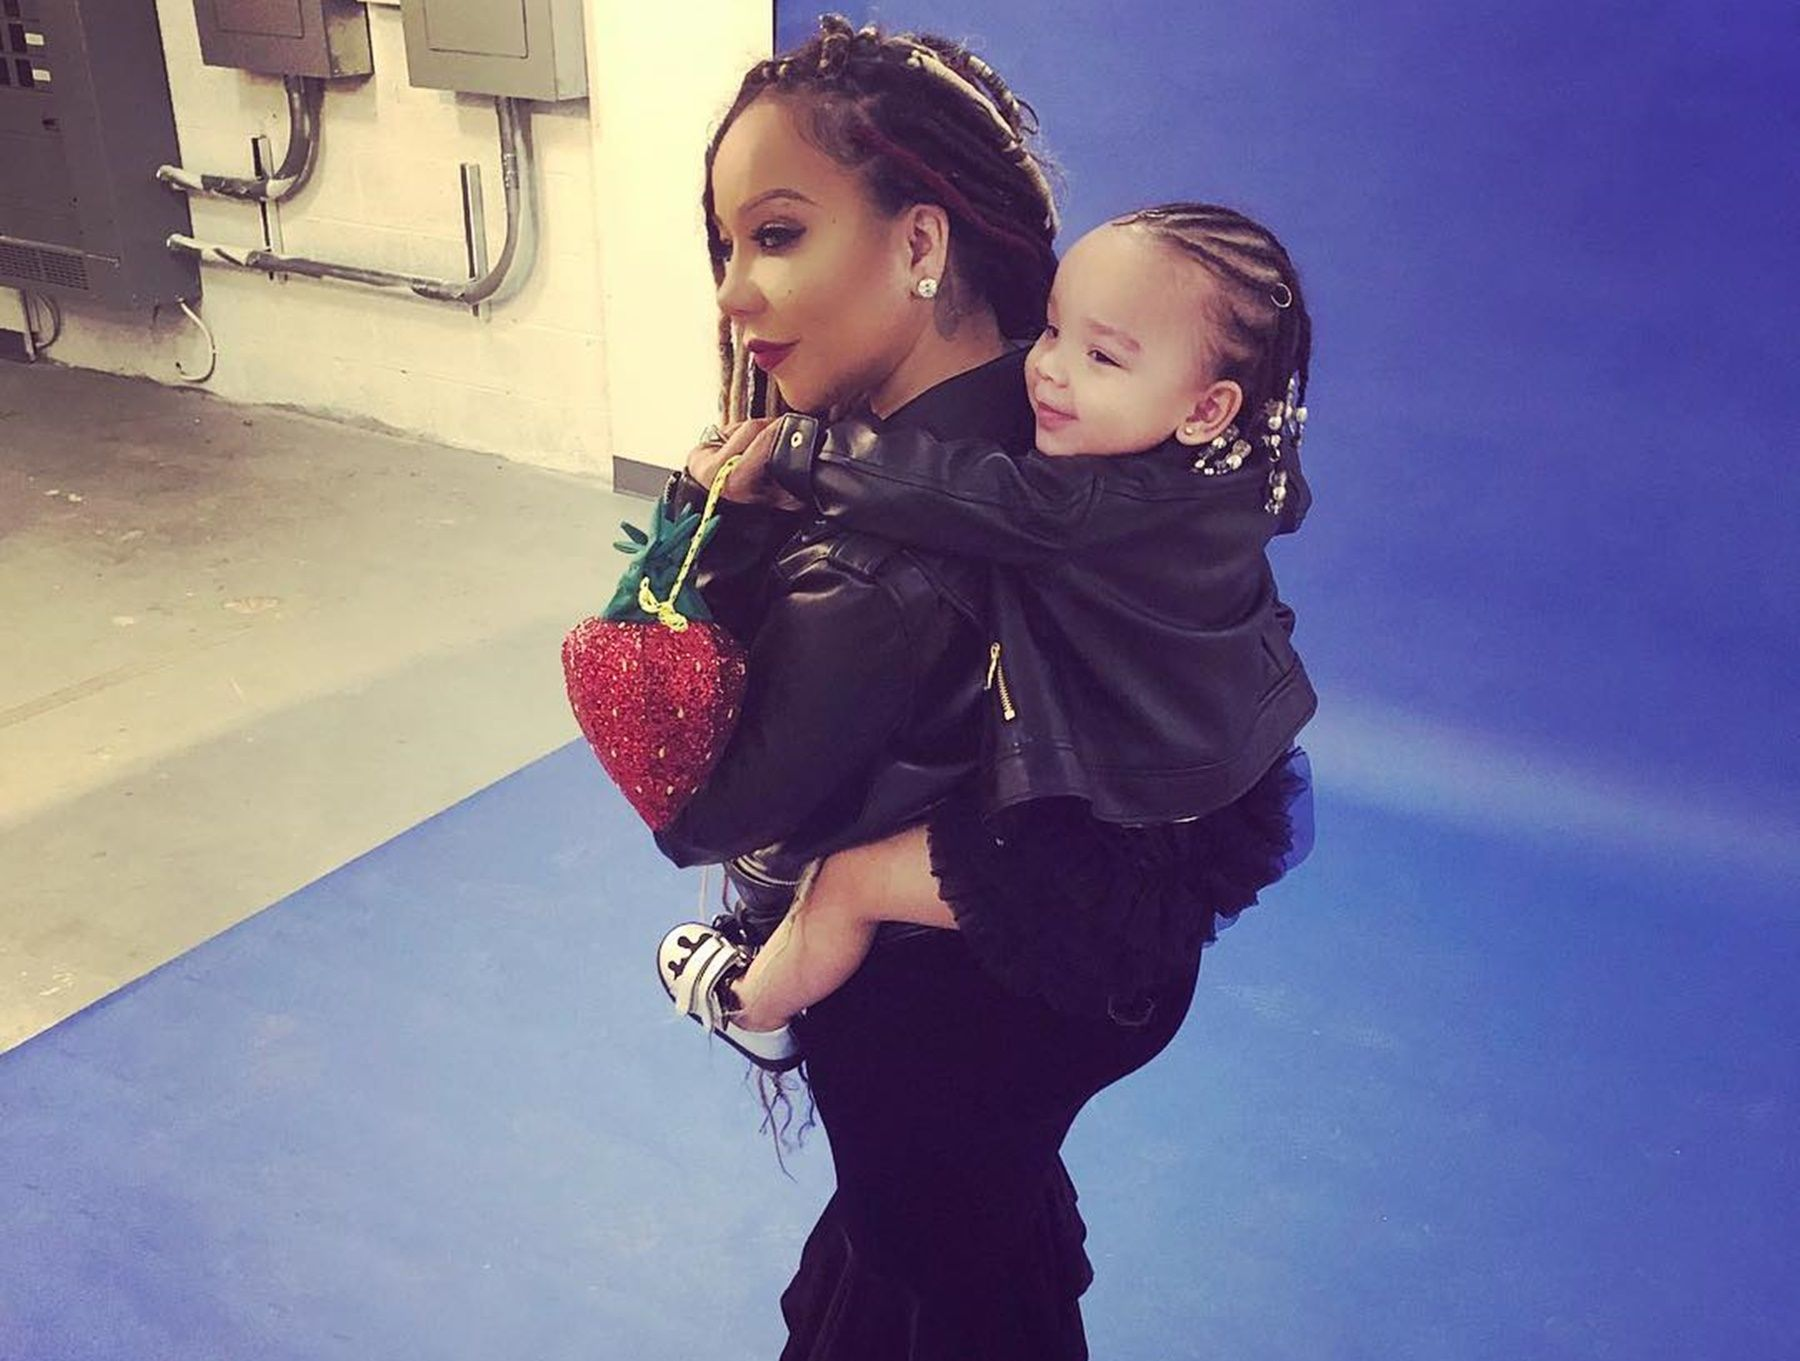 Tiny Harris' Daughter, Heiress Harris Has Her Very First Real TV Interview About Her Nail Polish Line - Watch It Here